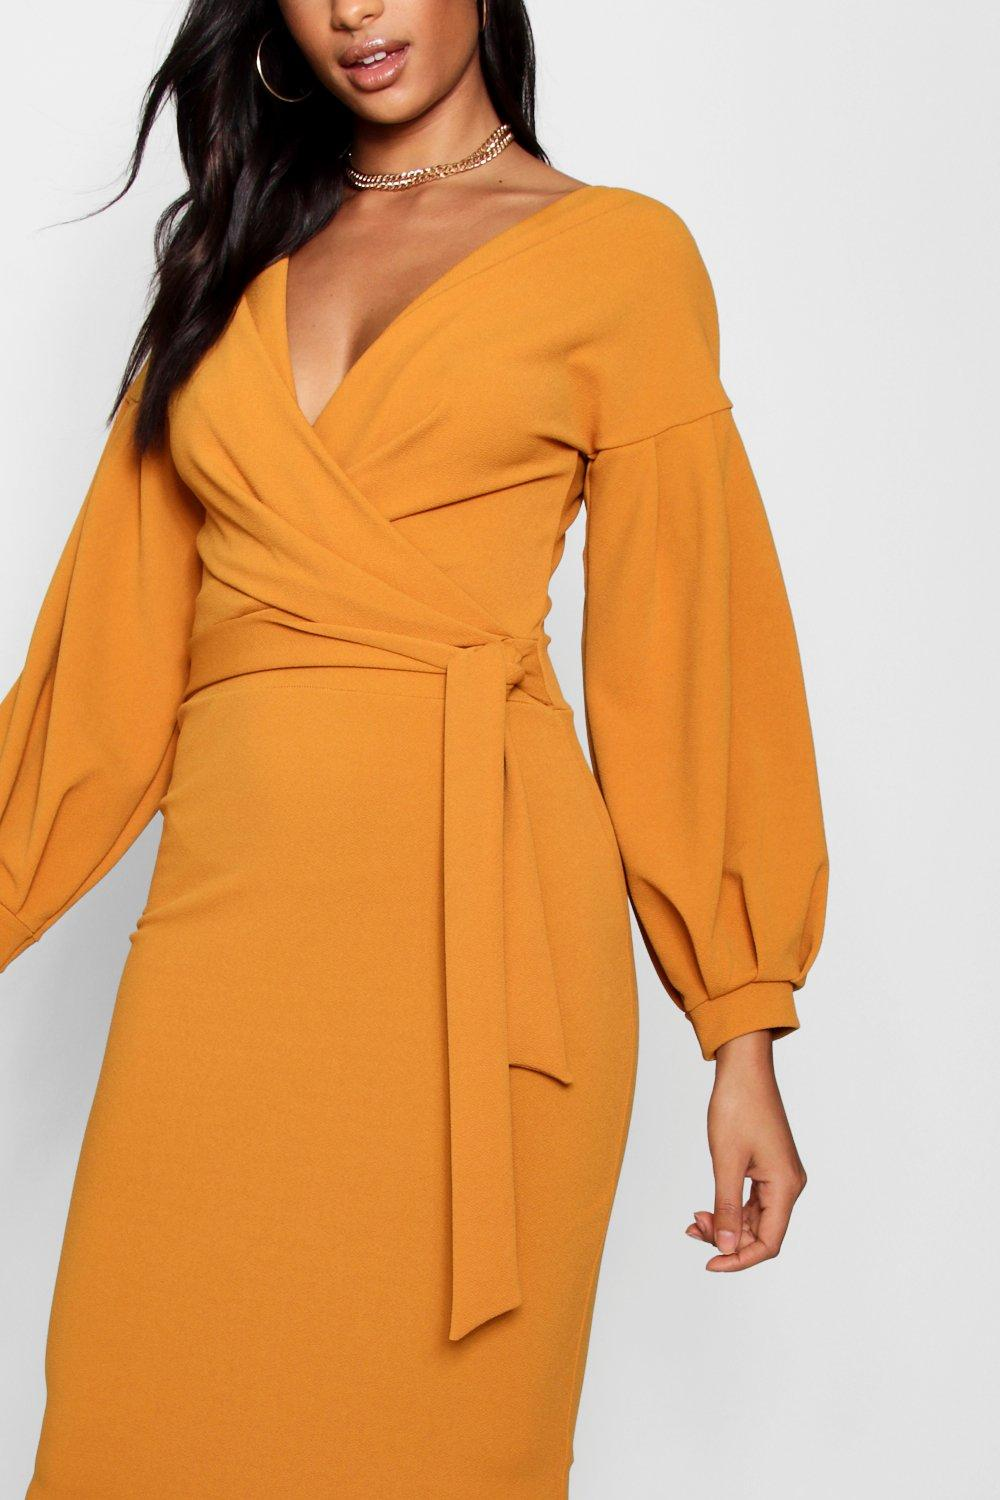 The bodycon shoulder off midi tall dress wrap rockwall knoxville